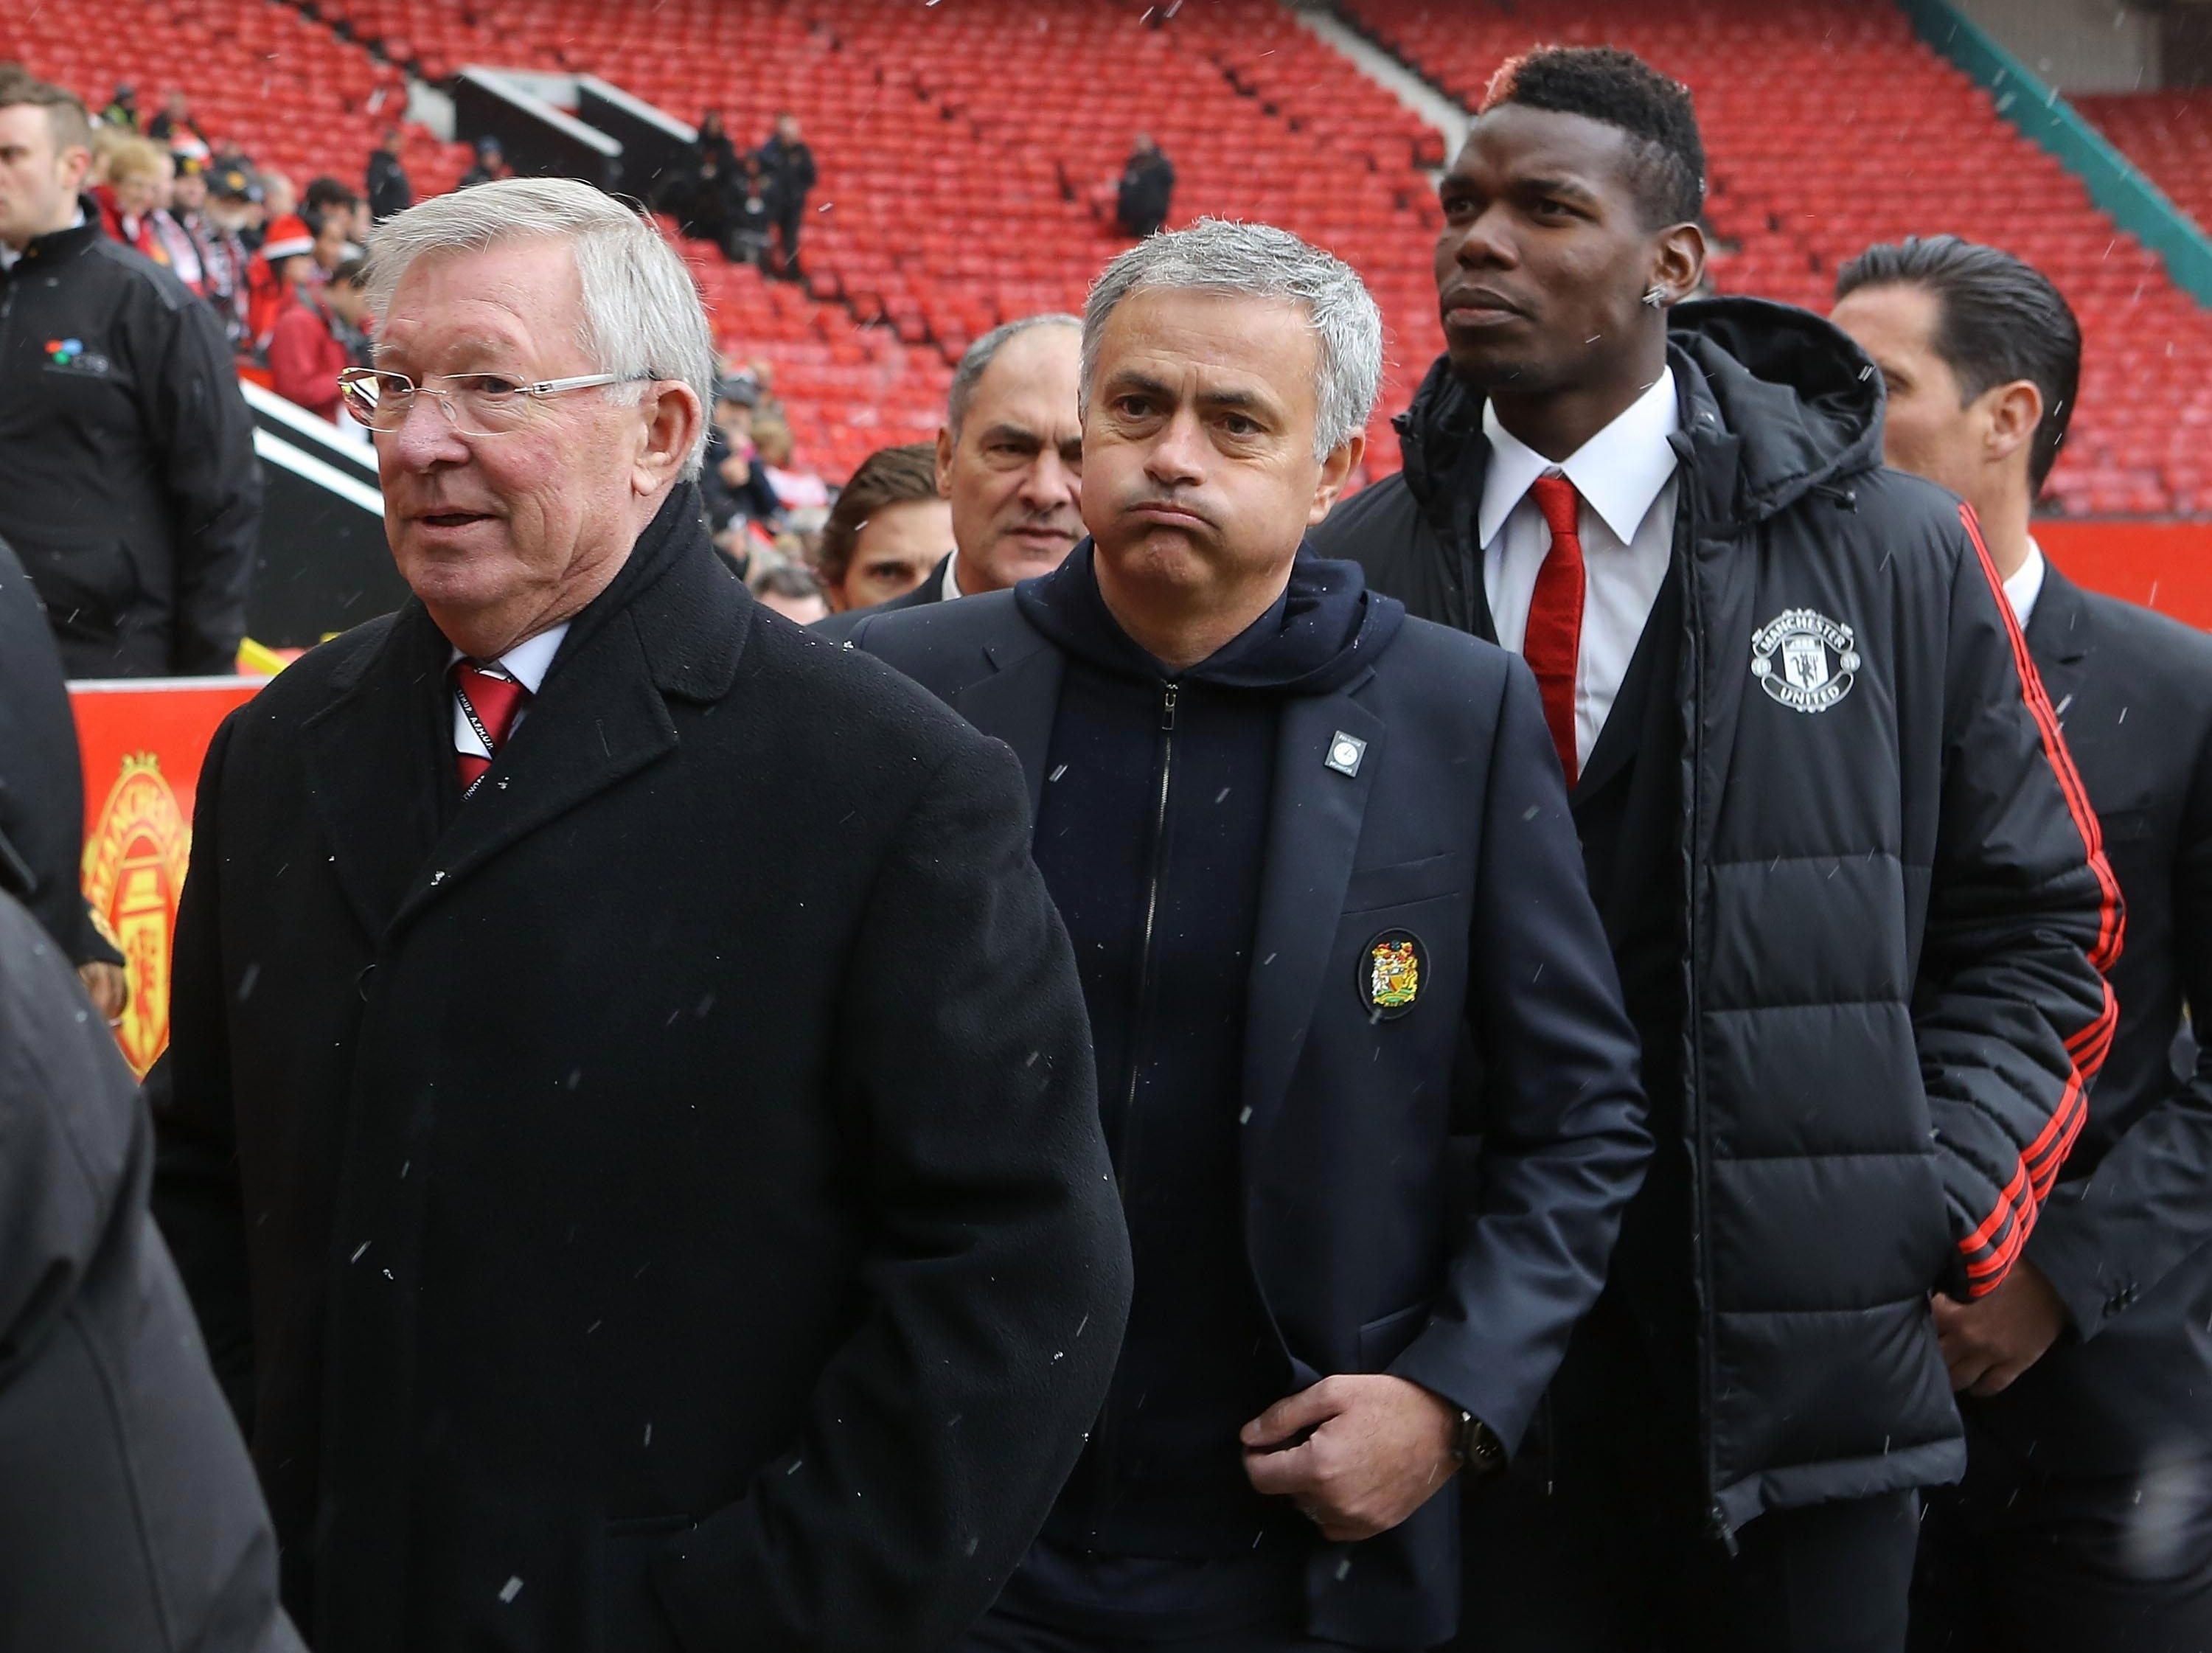 Sir Alex Ferguson, Jose Mourinho and Paul Pogba arrive for the start of the service